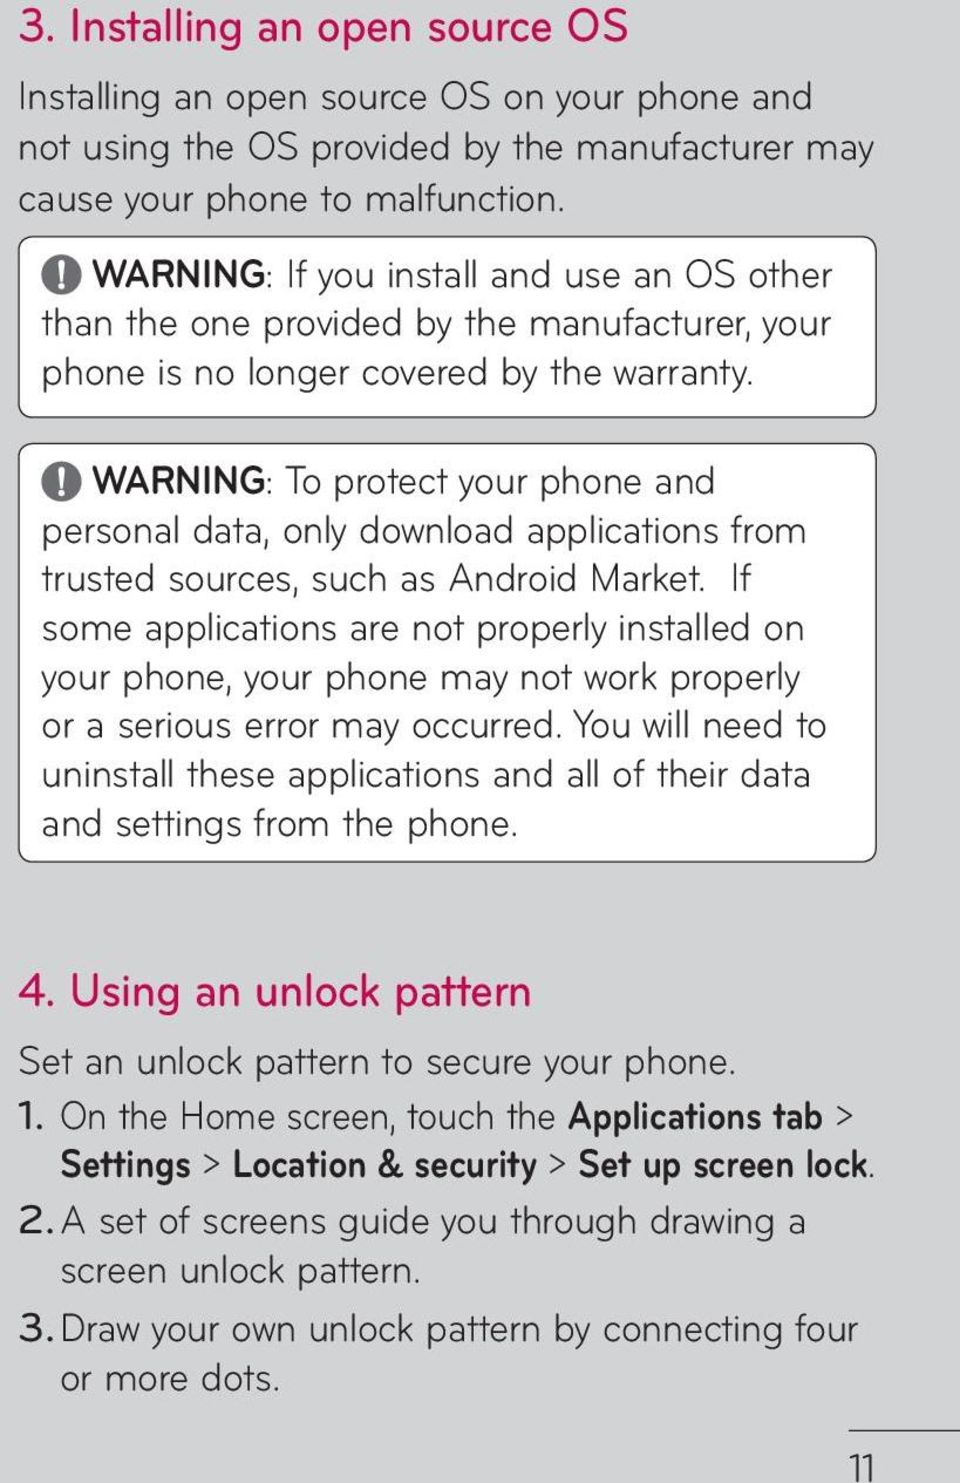 WARNING: To protect your phone and personal data, only download applications from trusted sources, such as Android Market.